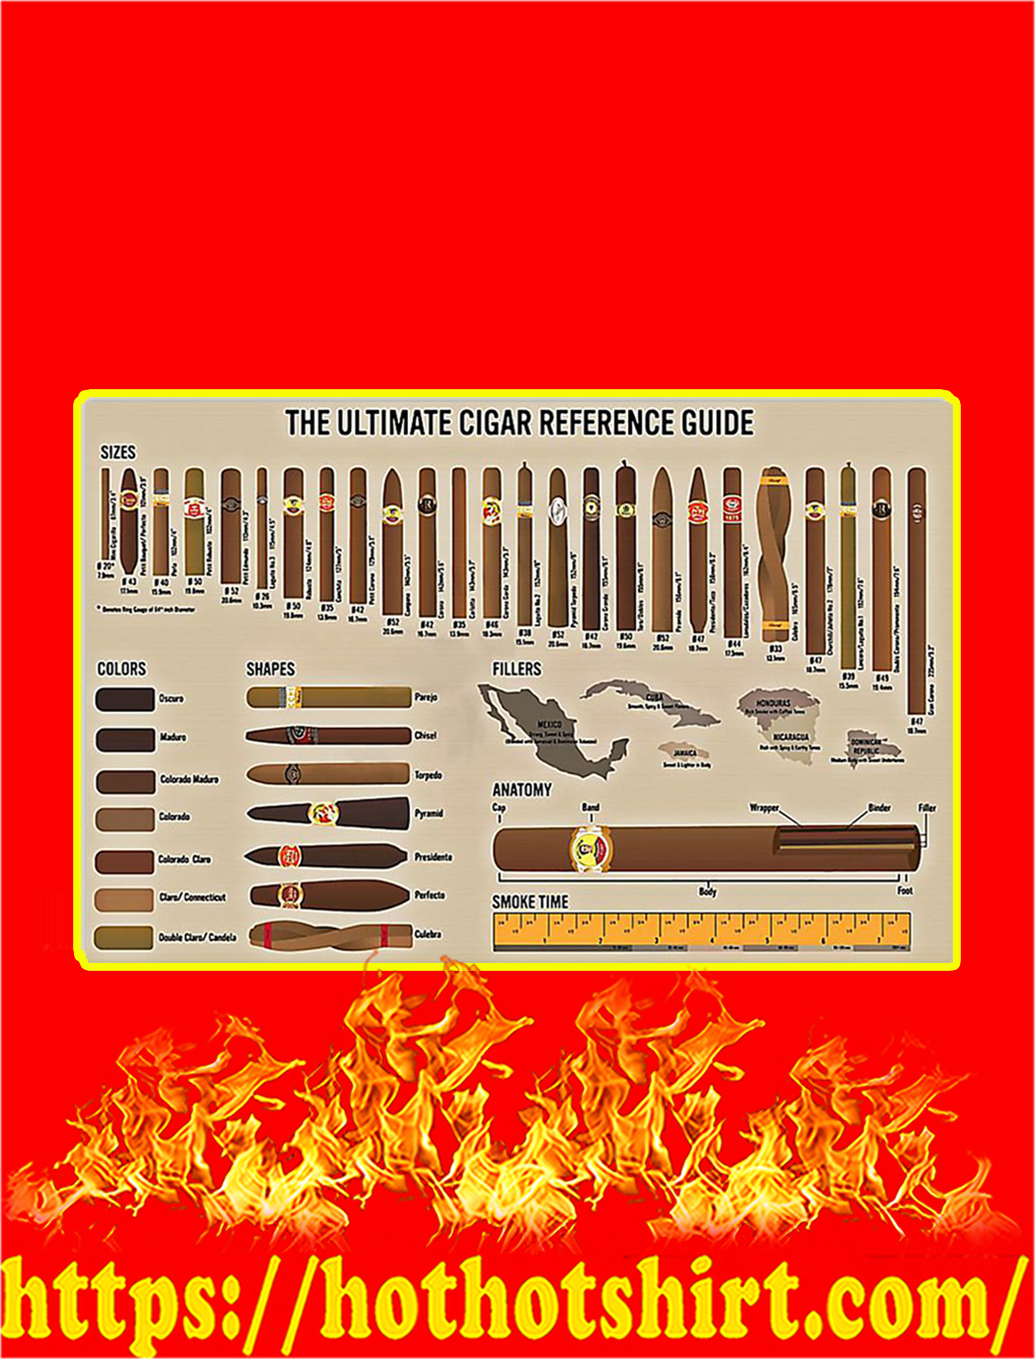 The Ultimate Cigar Reference Guide Poster - 24x16